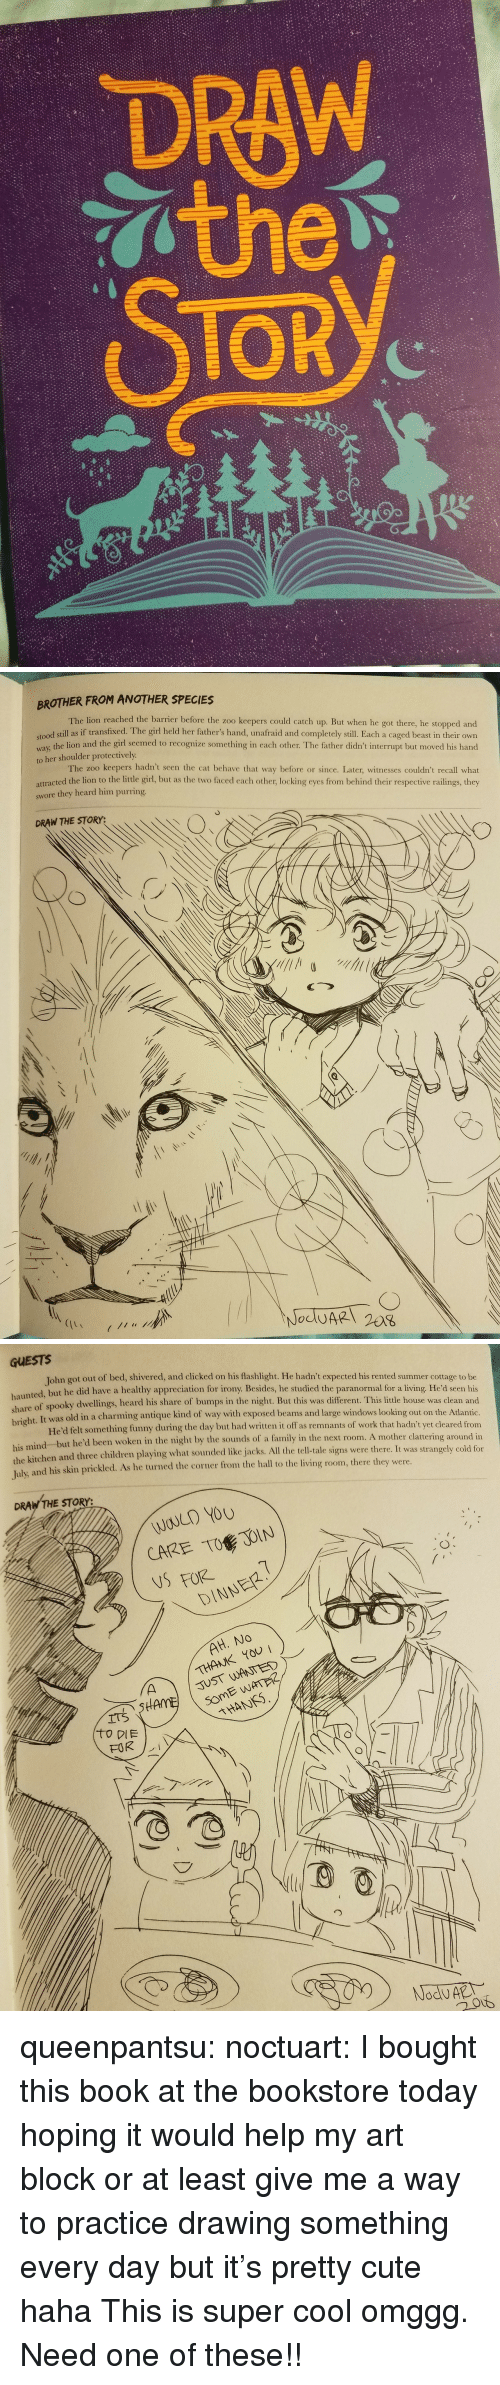 two faced: DRAW  TOR  2/   BROTHER FROM ANOTHER SPECIES  The lion reached the barrier before the zoo keepers could catch up. But when he got there, he stopped and  dl still as if transfixed. The girl held her father's hand, unafraid and completely still. Each a caged beast in their own  way, the lion and the girl seemed to recognize something in cach other. The father didn't interrupt but moved his hand  to her shoulder protectively  The zoo keepers hadn't seen the cat behave that way before or since. Later, witnesses couldn't recall what  attracted the lion to the little girl, but as the two faced each other, locking eyes from behind their respective railings, they  swore they heard him purring  DRAW THE STORY:   GUESTS  John got out of bed, shivered, and clicked on his flashlight. He hadn't expected his rented summer cottage to be  nted, but he did have a healthy appreciation for irony. Besides, he studied the paranormal for a living. He'd seen his  share  of spooky dwellings, heard his share of bumps in the night. But this was different. This little house was clean and  It was old in a charming antique kind of way with exposed beams and large windows looking out on the Atlantic  He'd felt something funny during the day but had written it off as remnants of work that hadn't yet cleared from  right.  his mind but he'd been woken in the night by the sounds of a family in the next room. A mother  the kitchen and three children playing what sounded like jacks. All the tell-tale signs were there. It was stran  Tulx  and his skin prickled. As he turned the corner from the hall to the living room, there they were.  clattering around in  gely cold for  DRAW THE STORY:  WOULD YOU  CARE TO JOIN  NSFORE  DINNER  THANK YOU  JUST WANTED  THANS queenpantsu:  noctuart:  I bought this book at the bookstore today hoping it would help my art block or at least give me a way to practice drawing something every day but it's pretty cute haha  This is super cool omggg. Need one of these